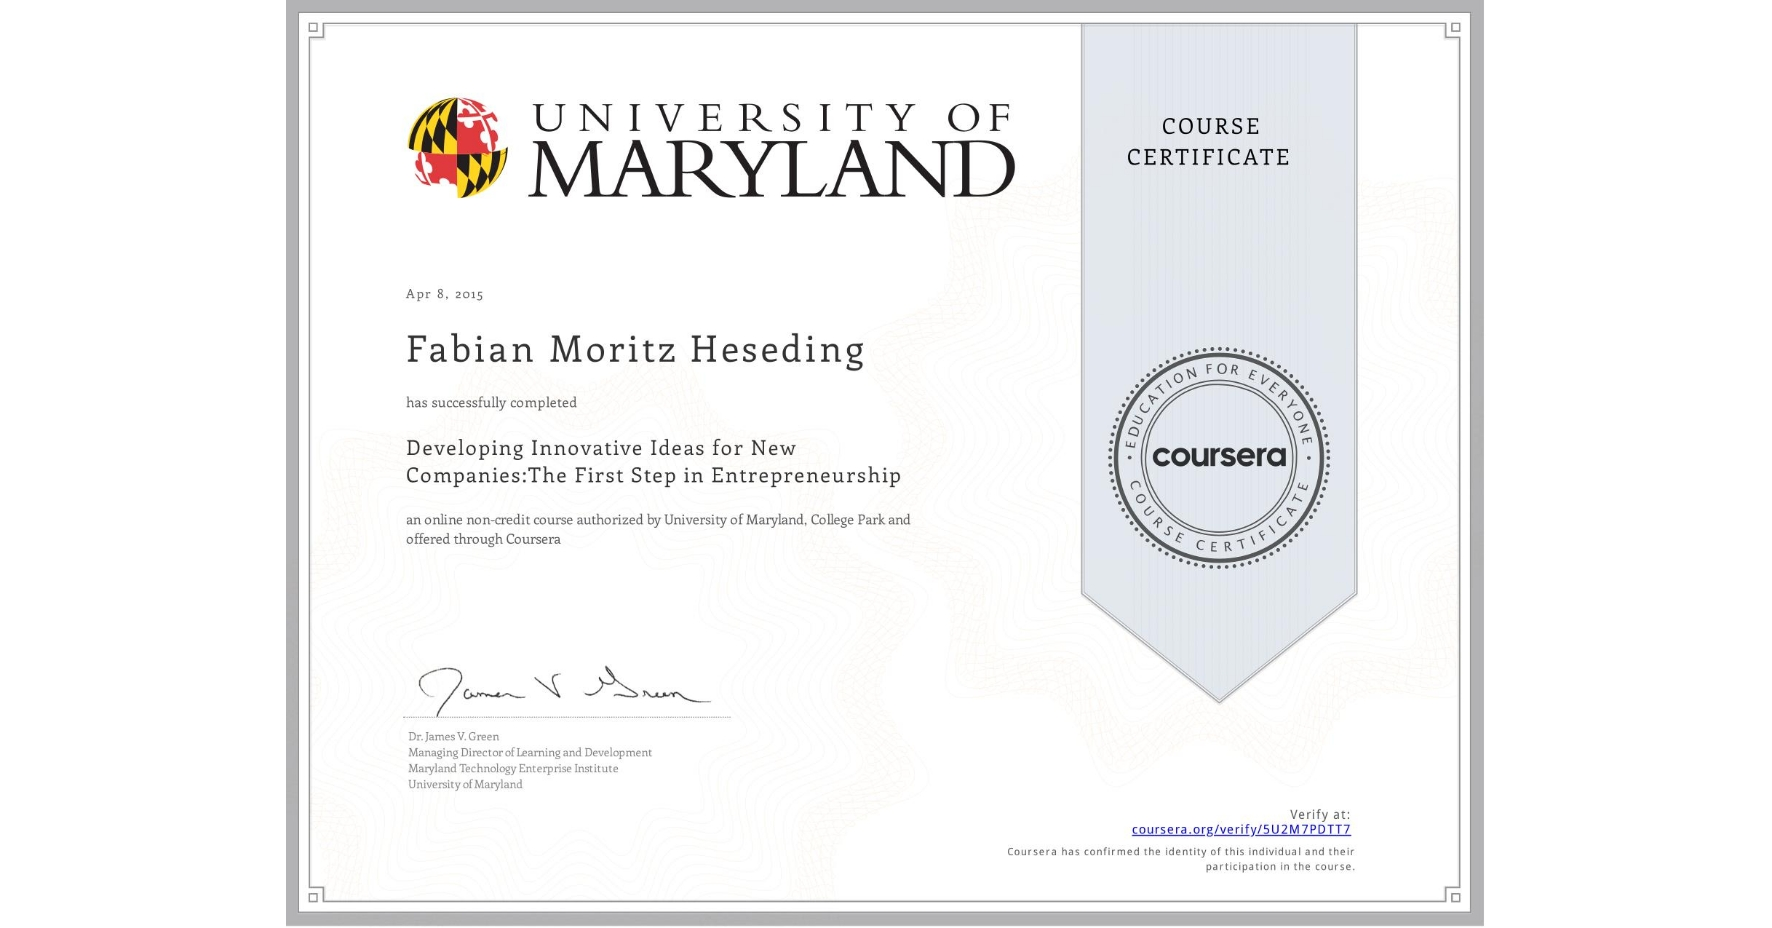 View certificate for Fabian Moritz Heseding, Developing Innovative Ideas for New Companies:The First Step in Entrepreneurship, an online non-credit course authorized by University of Maryland, College Park and offered through Coursera